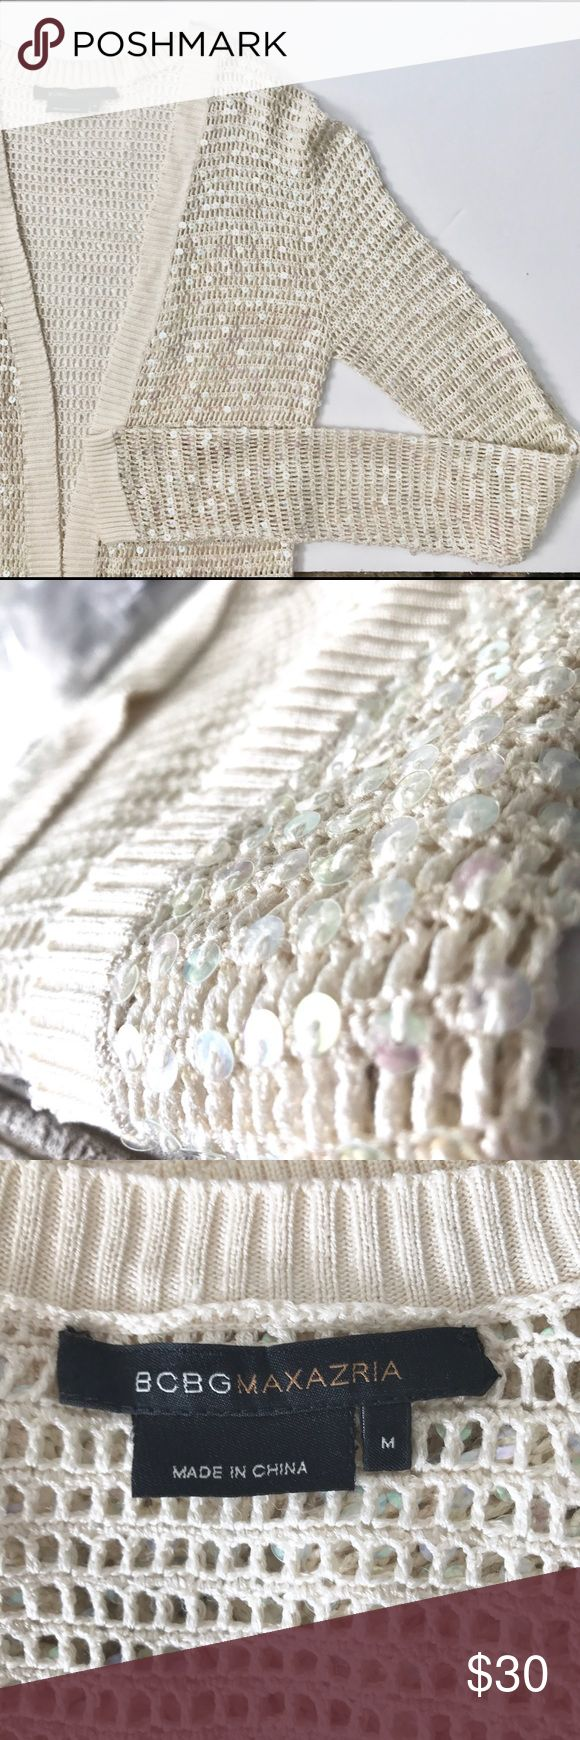 BCBGMaxAzria Sequined Cardigan BCBGMaxAzria Sequined Cardigan, off white bone color, size M, perfect for spring layering, smoke free home, NWOT BCBGMaxAzria Tops